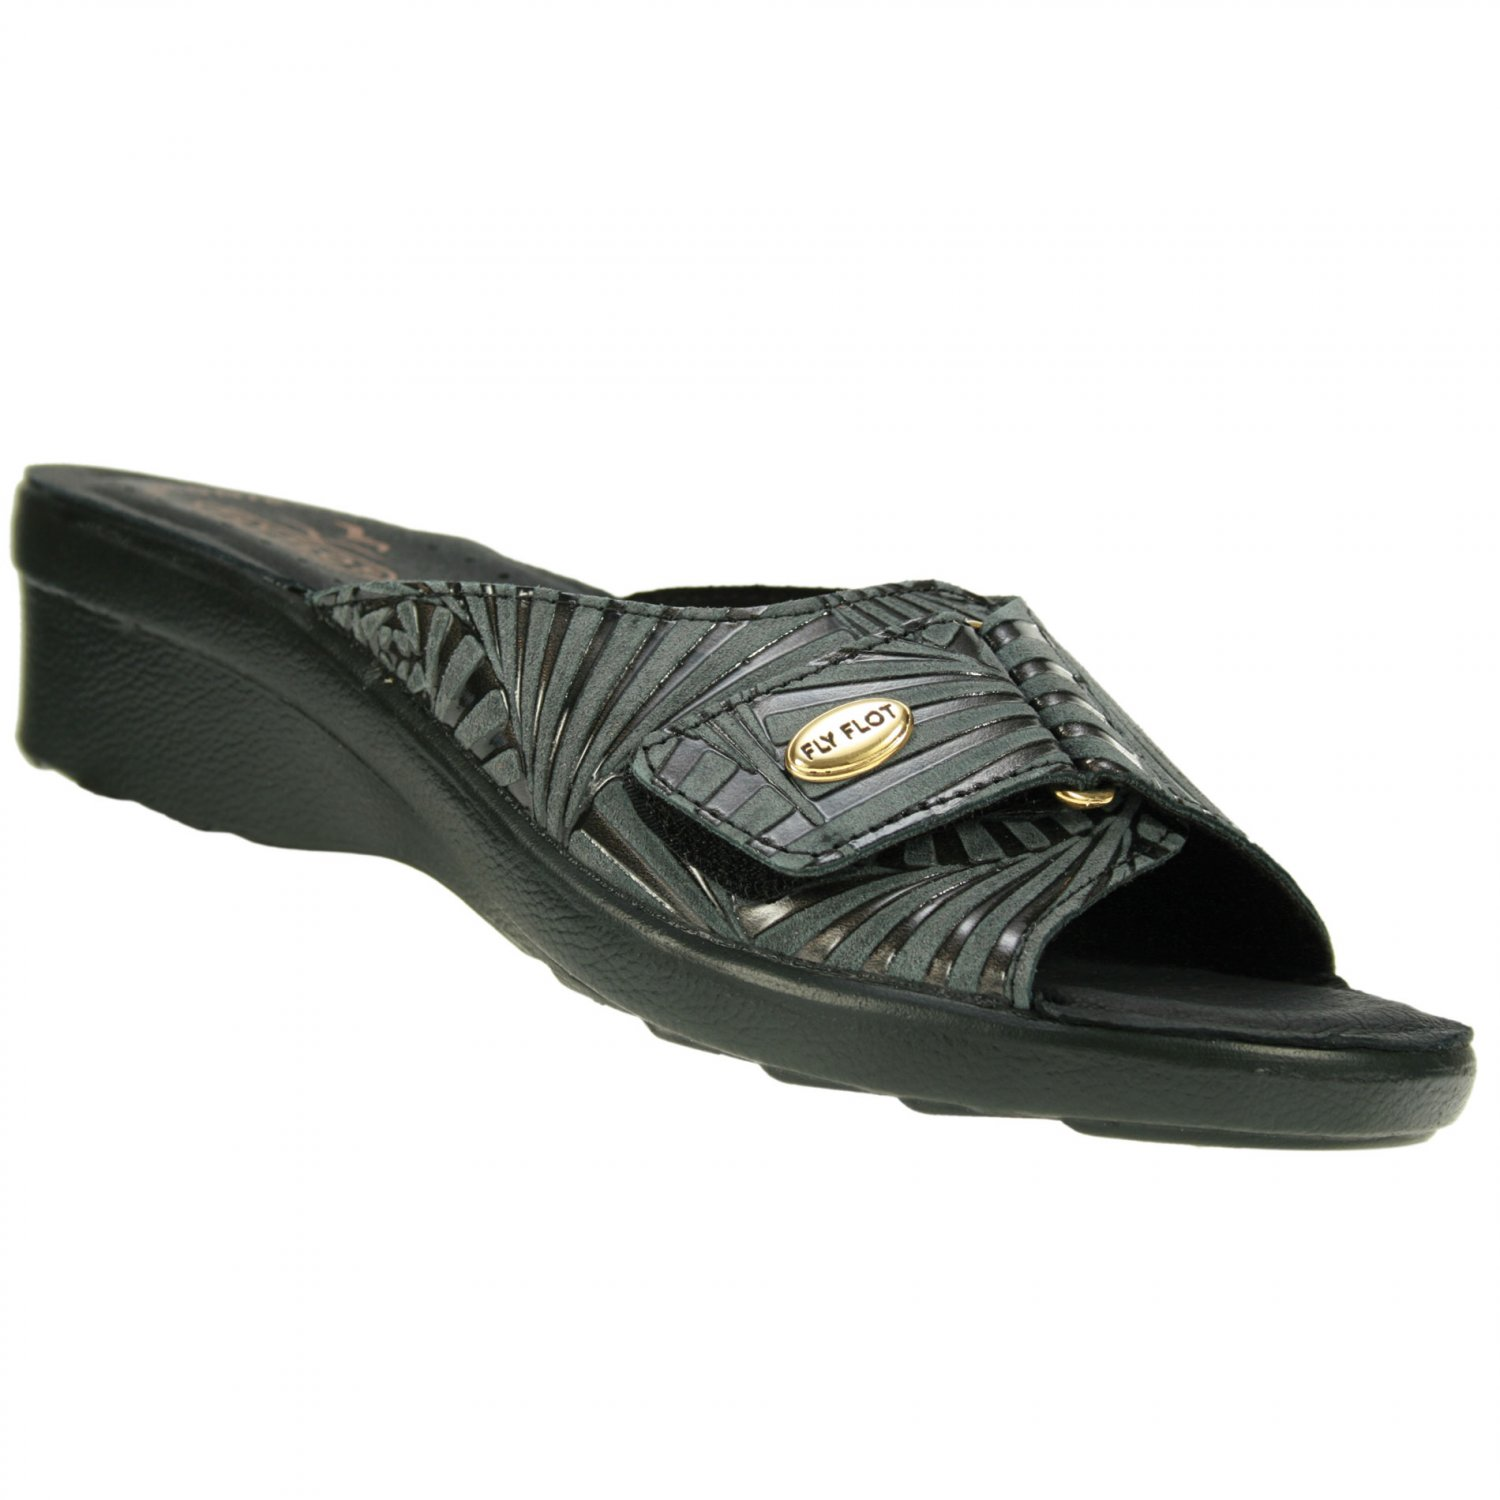 FLY FLOT KAT Slippers Shoes All Sizes & Colors $59.99